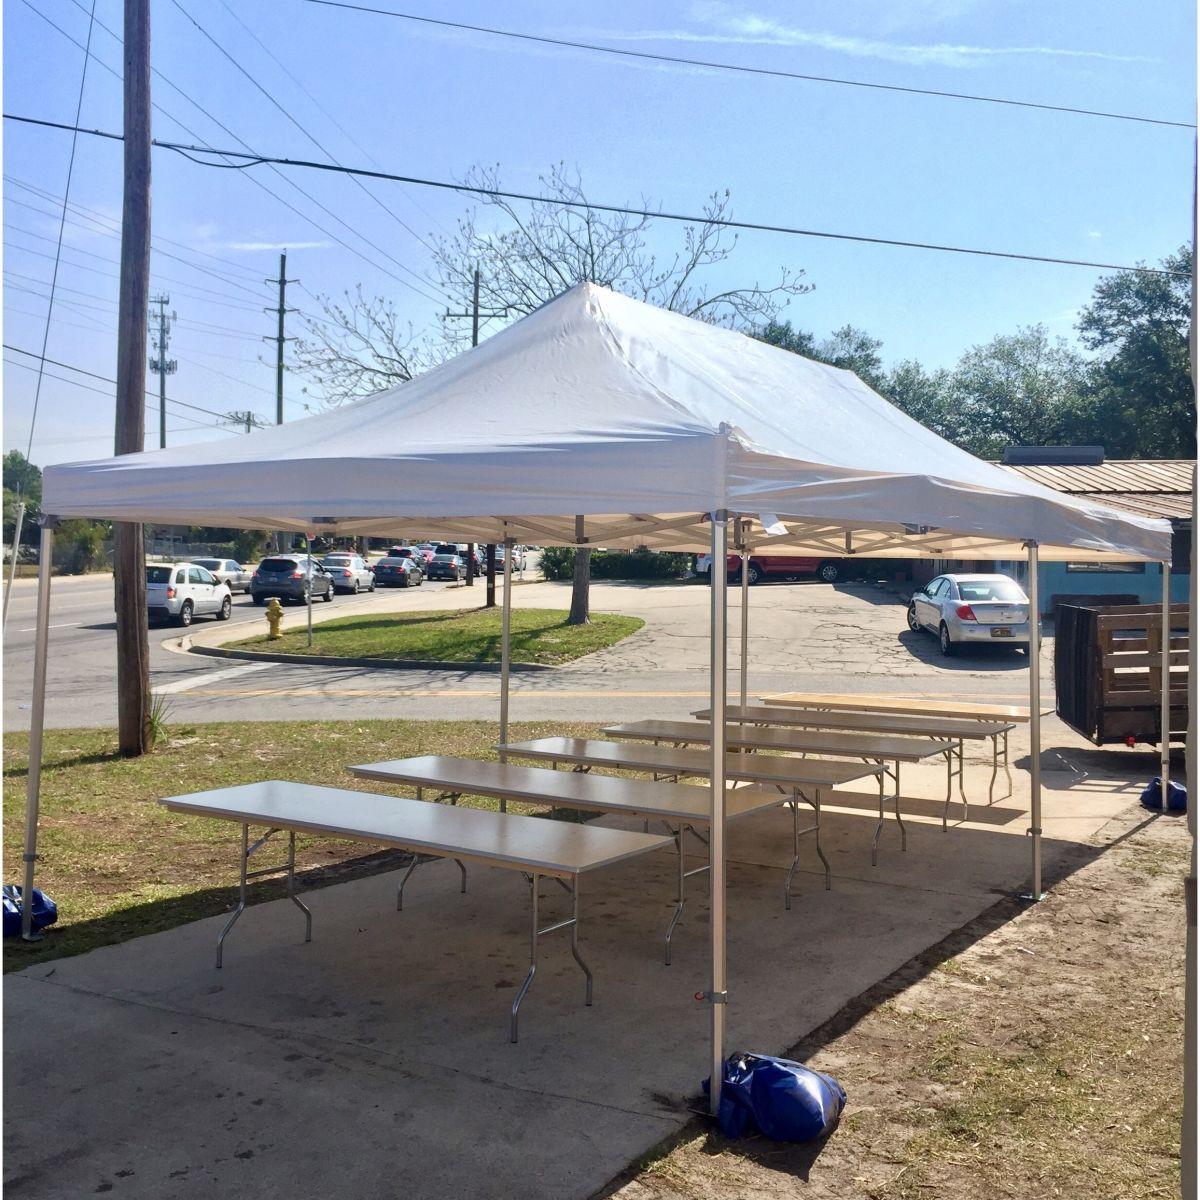 This is a big tent it can seat up to 50 people 5 8 foot long tables 10 chairs to each table. & Ox Speedy Easy Up Tent 13 x 26